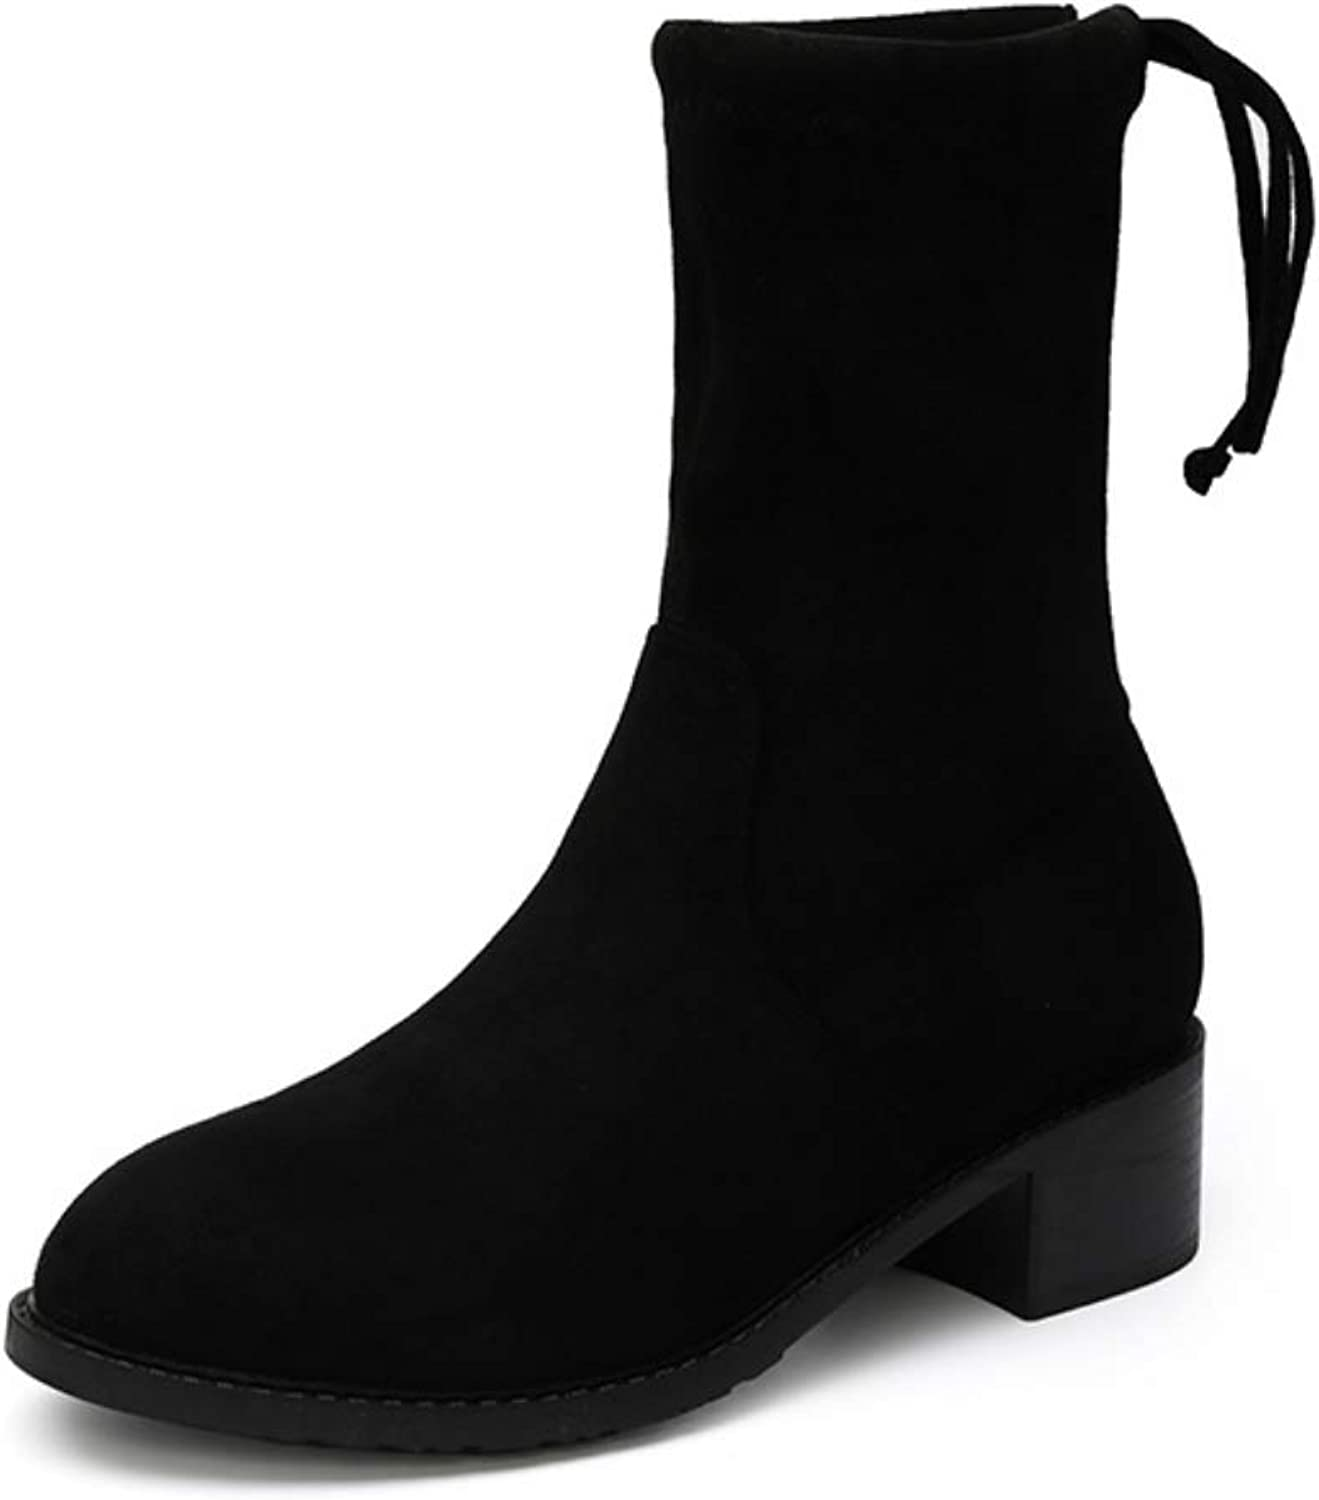 Women Calf Boots Slim Stretch Short Boots  2018 Autumn and Winter New Middle Tube Thick with Heel Boots Round Head Fashion Socks Boots Black